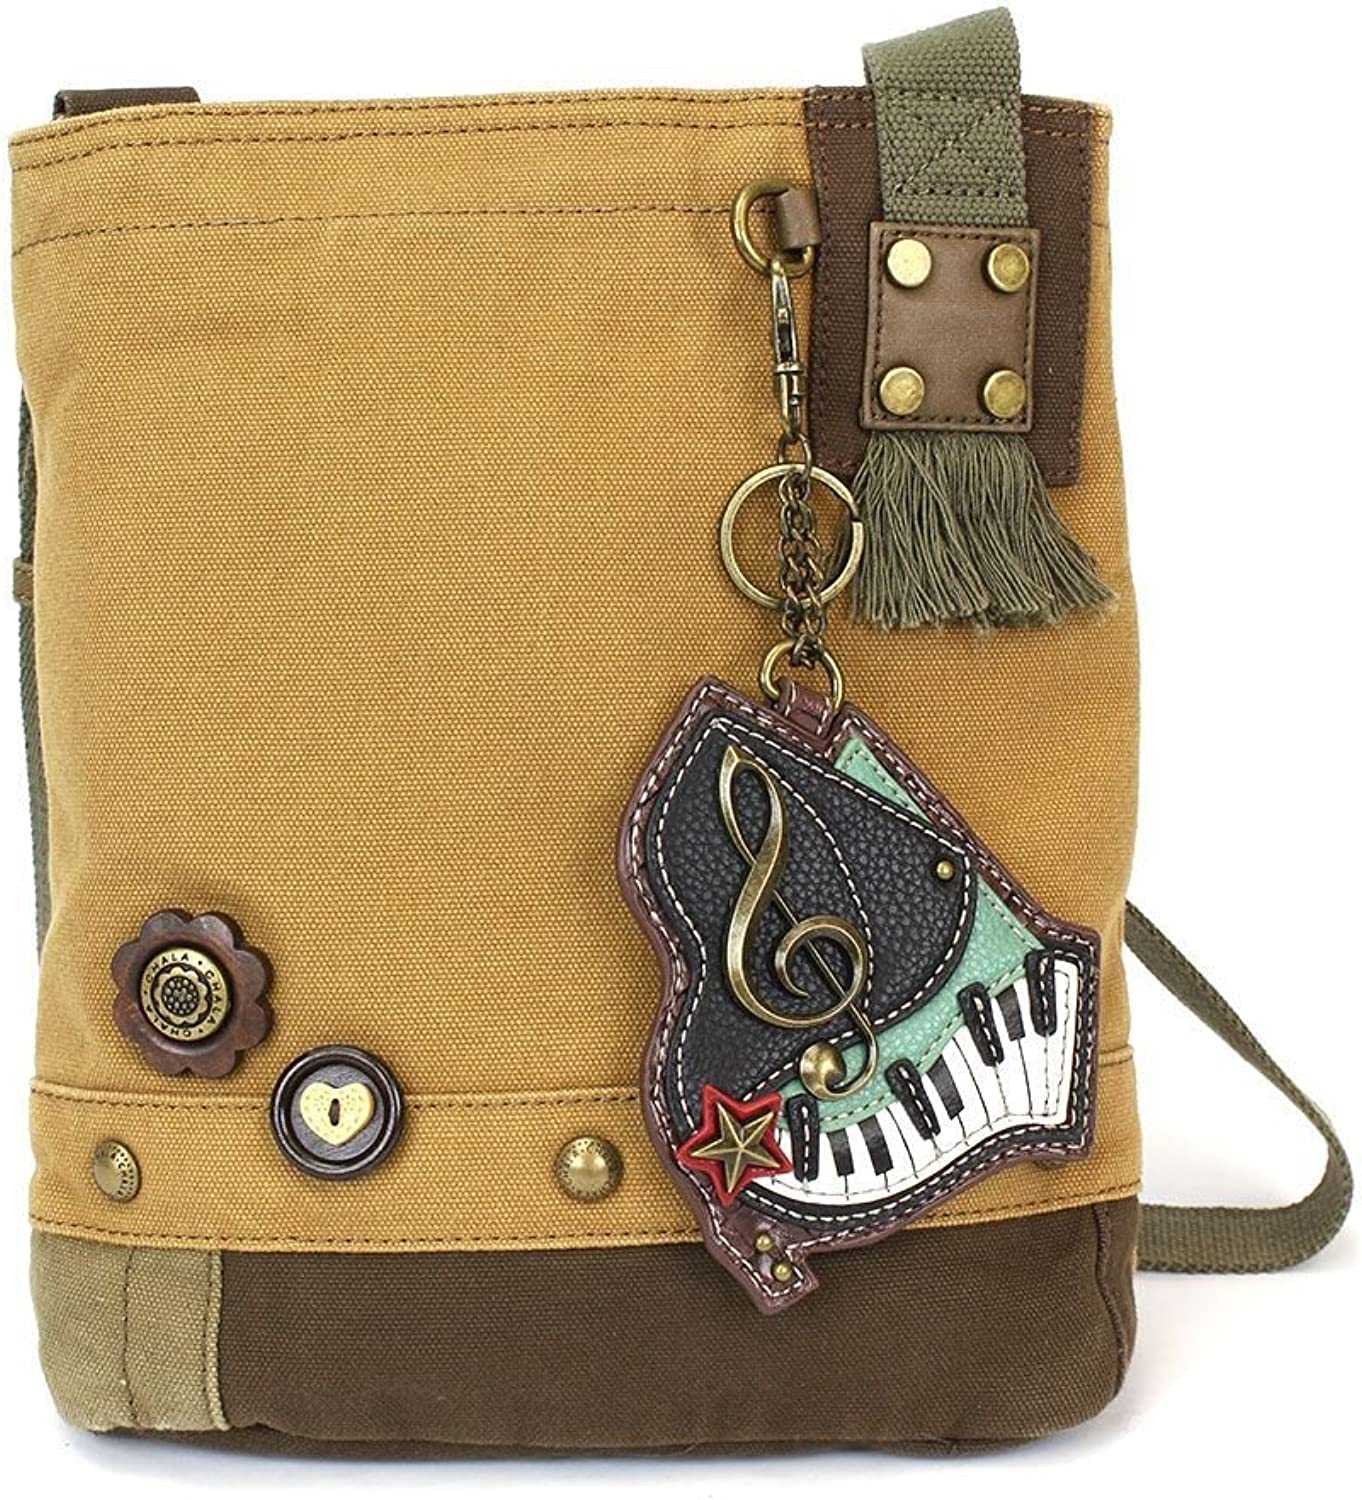 Chala Womens' Canvas Patch Crossbody Handbag Piano  Brown